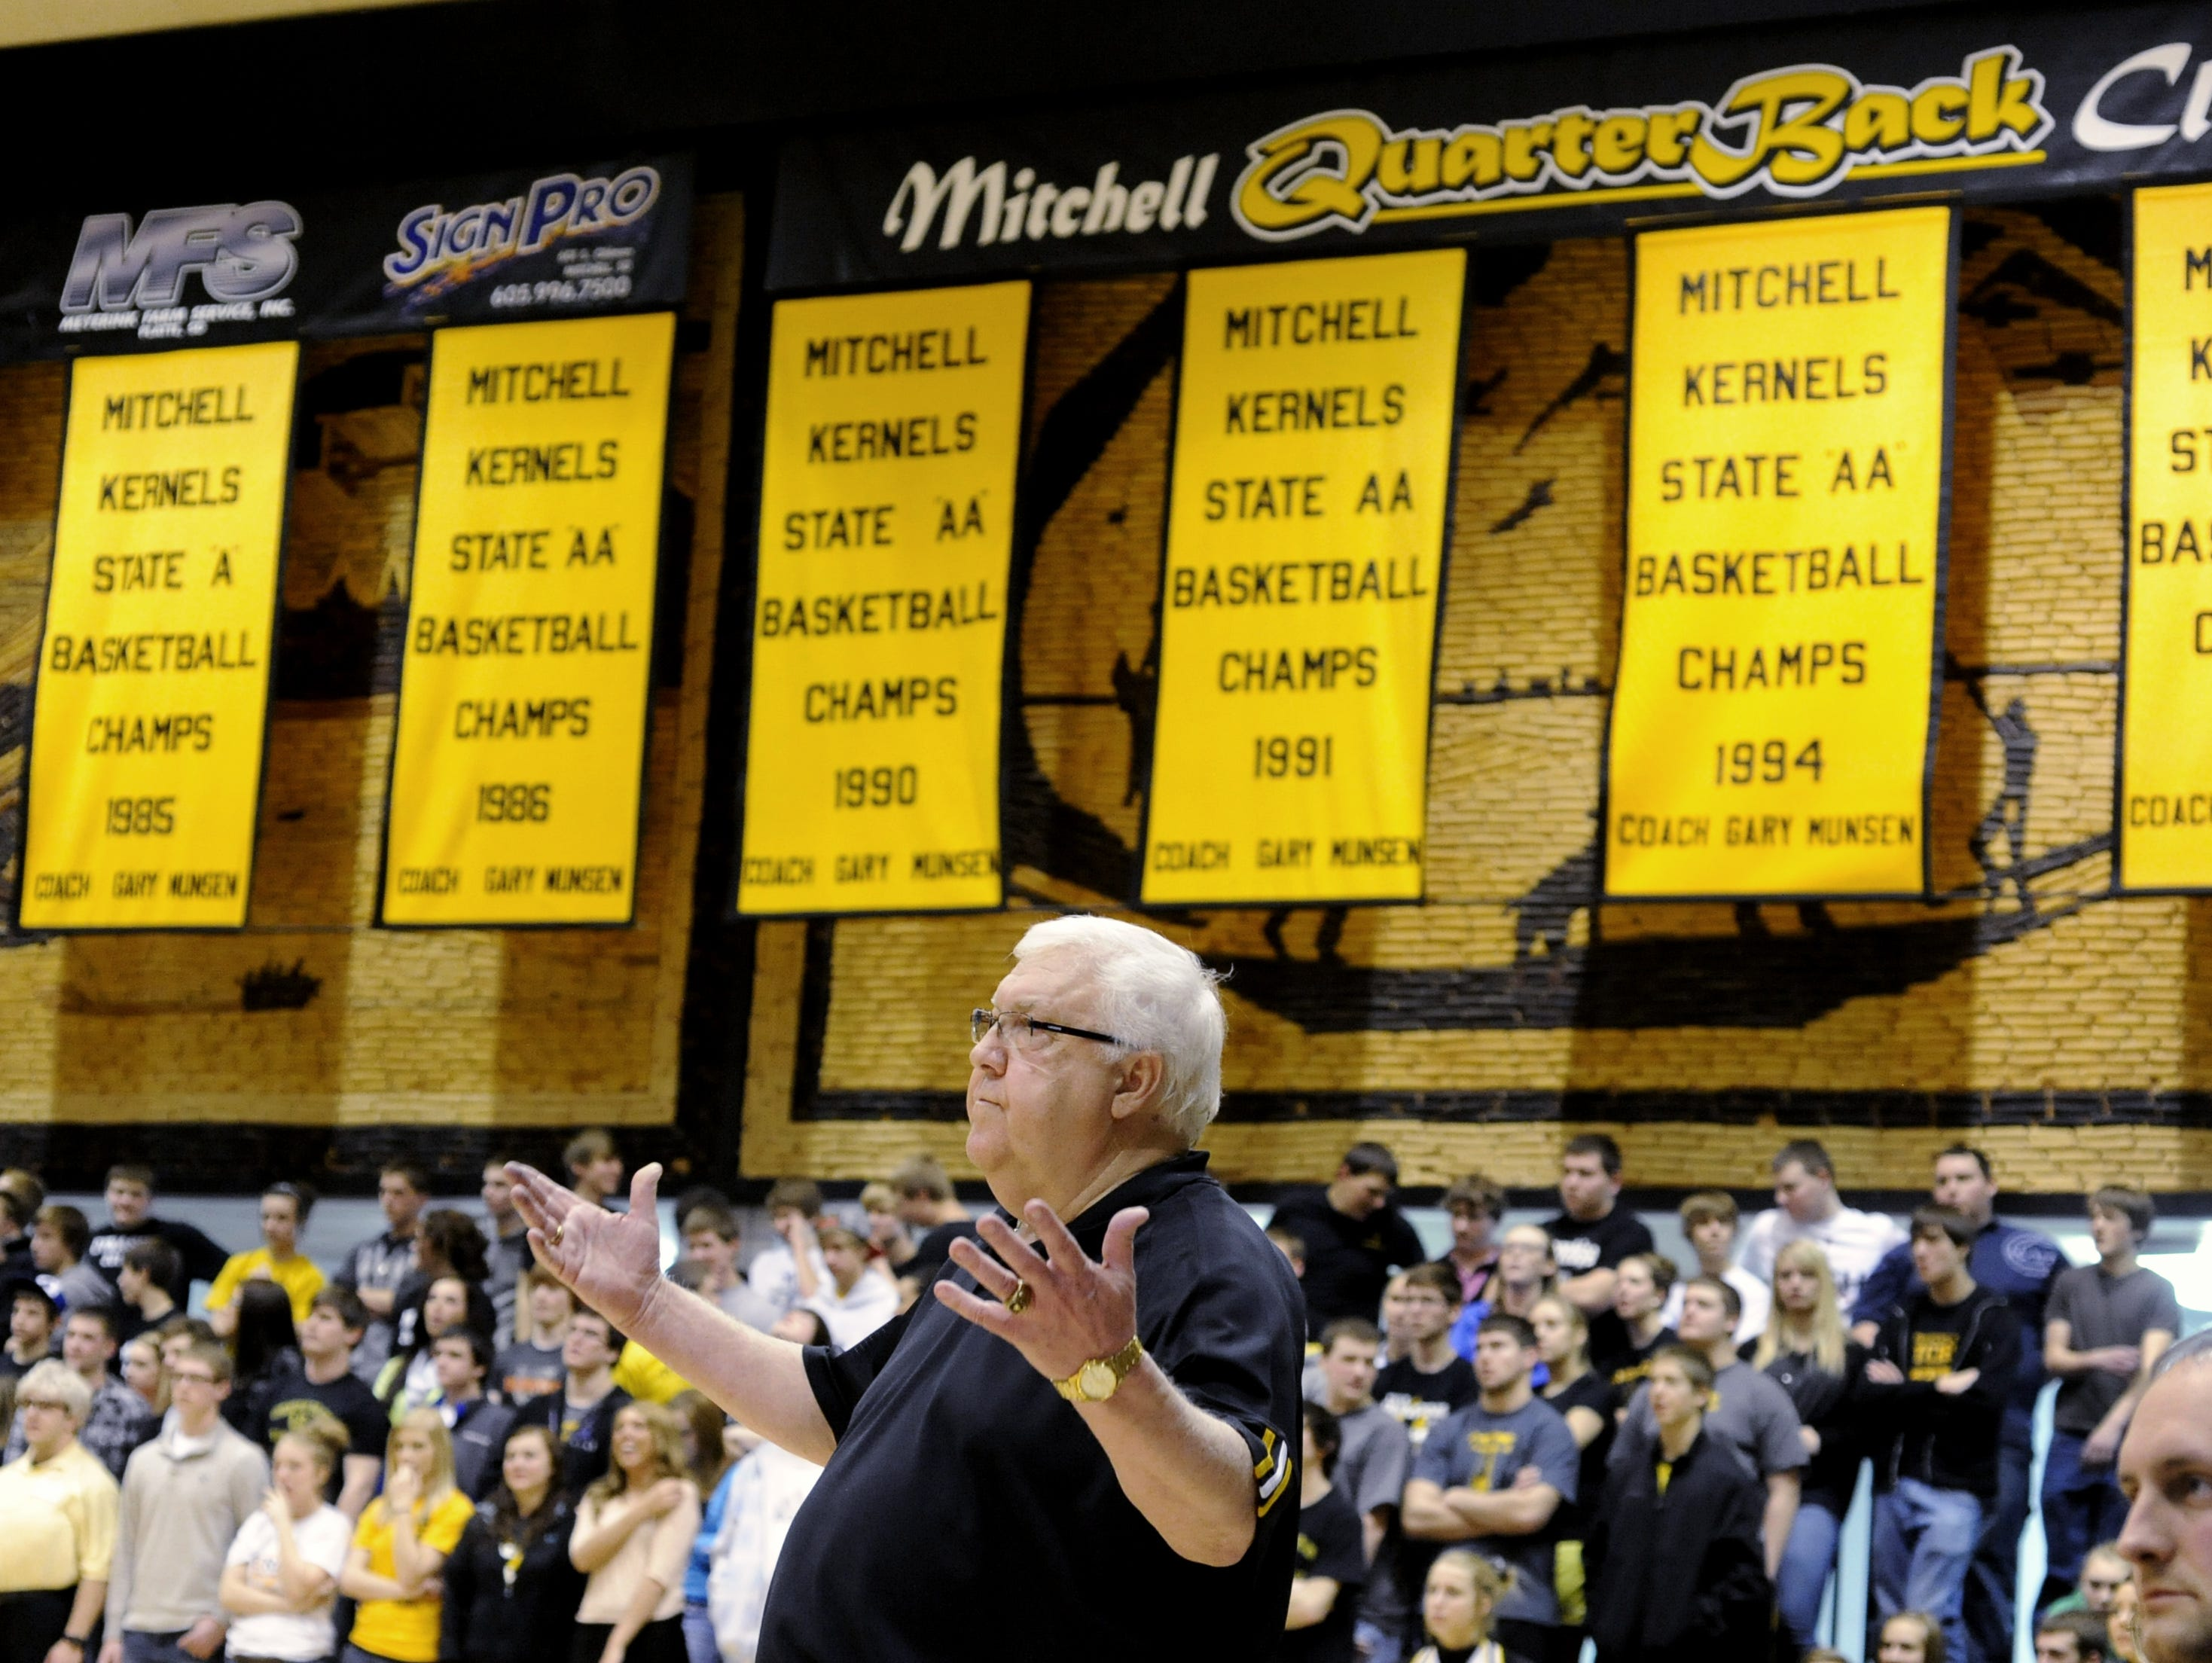 Gary Munsen works the sideline at the Corn Palace in Mitchell on Feb. 14, 2012. Banners draped behind him signify some of the state titles the Kernels won under his watch. Munsen died Jan. 12, 2016.